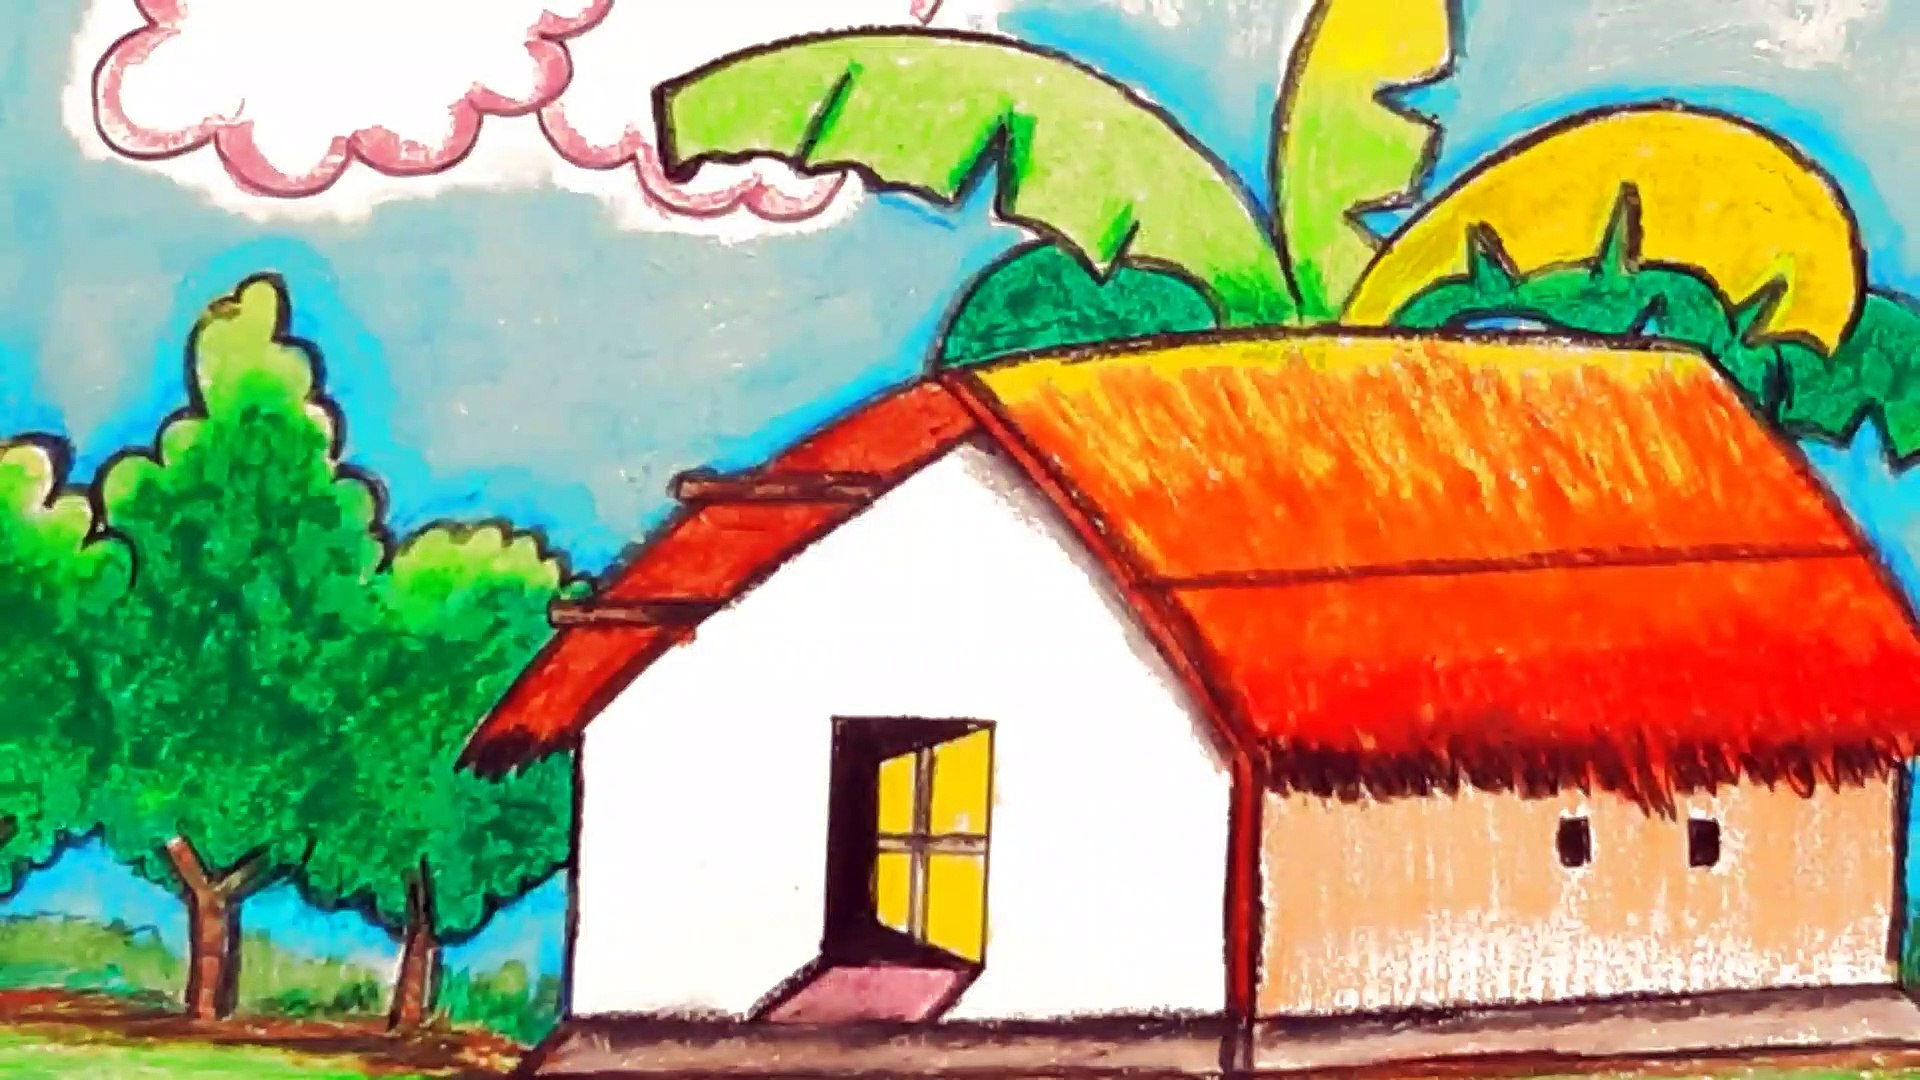 How to draw a house,draw a house easy,draw house for kids